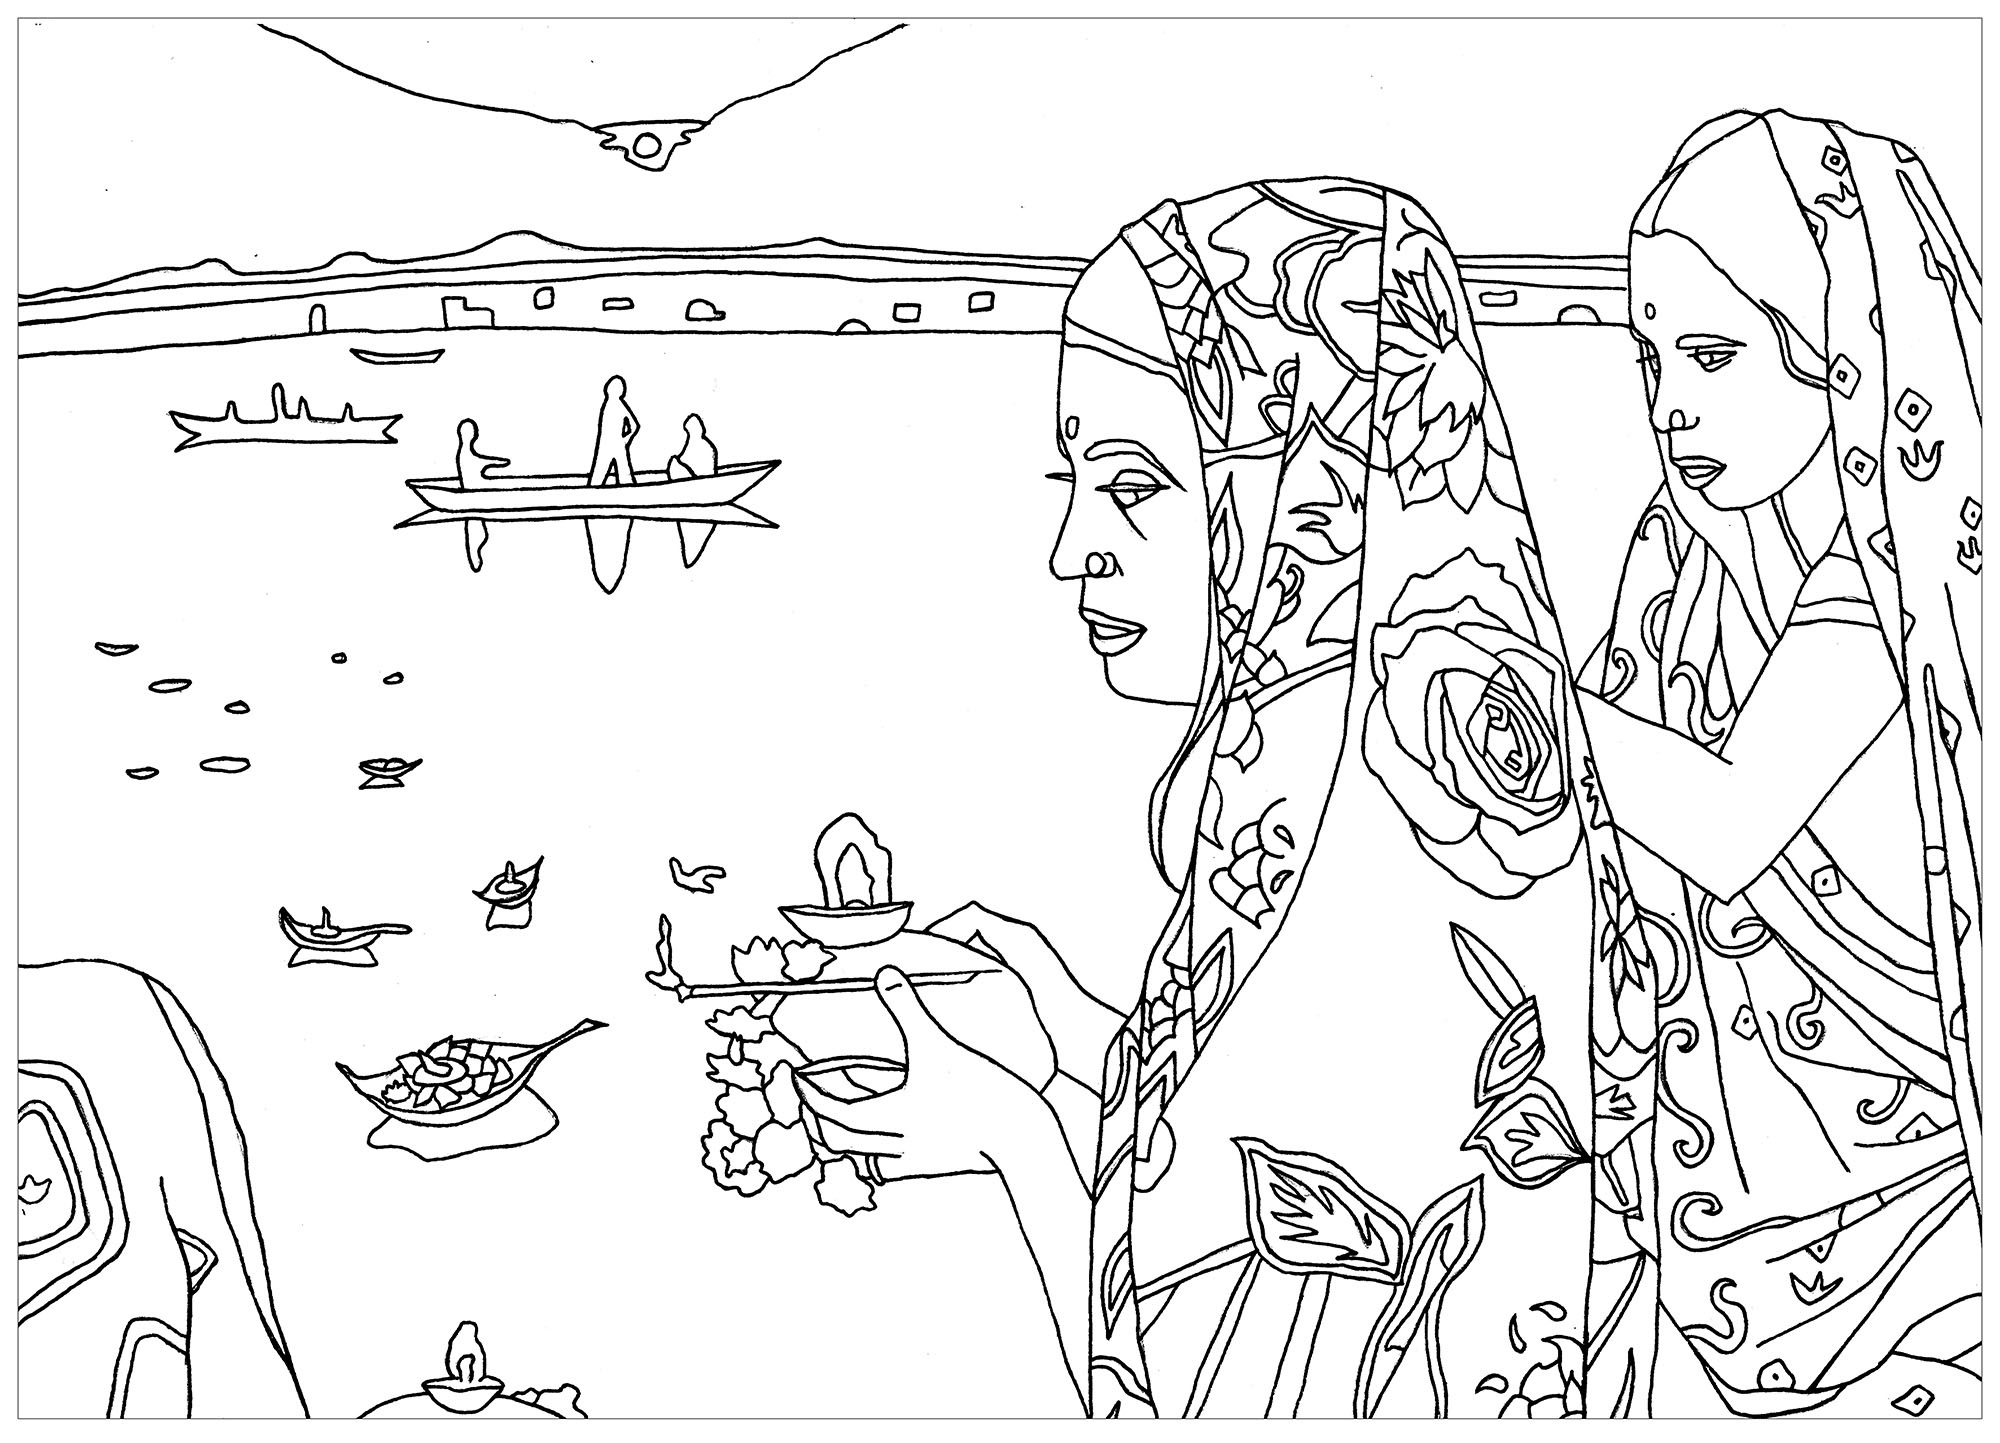 indian coloring page india puja rite india adult coloring pages coloring indian page